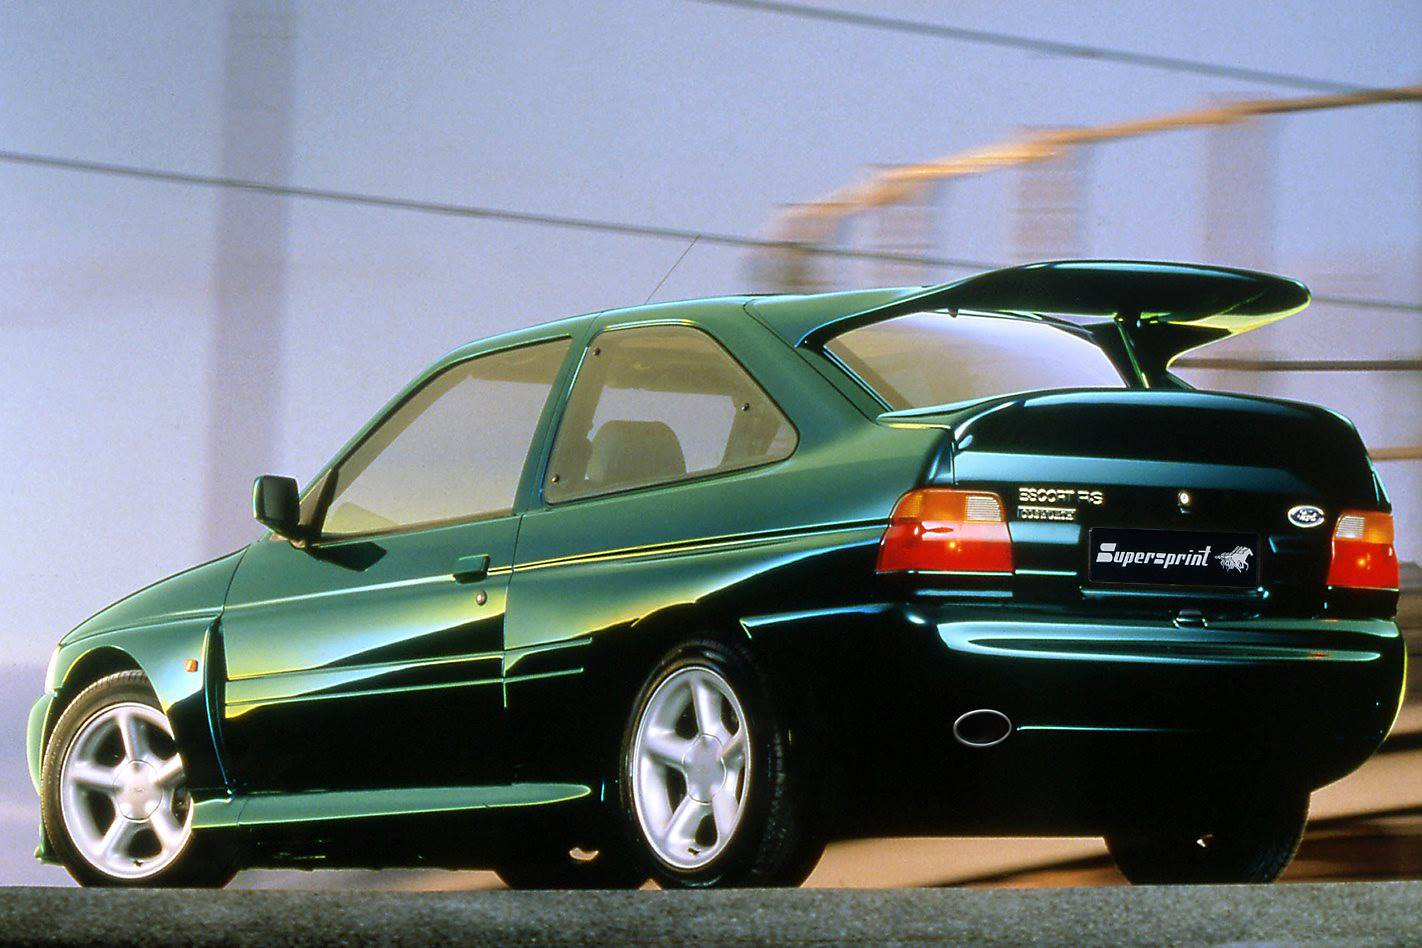 FORD ESCORT RS  COSWORTH 4x4 (220 Hp) '92 ->'96